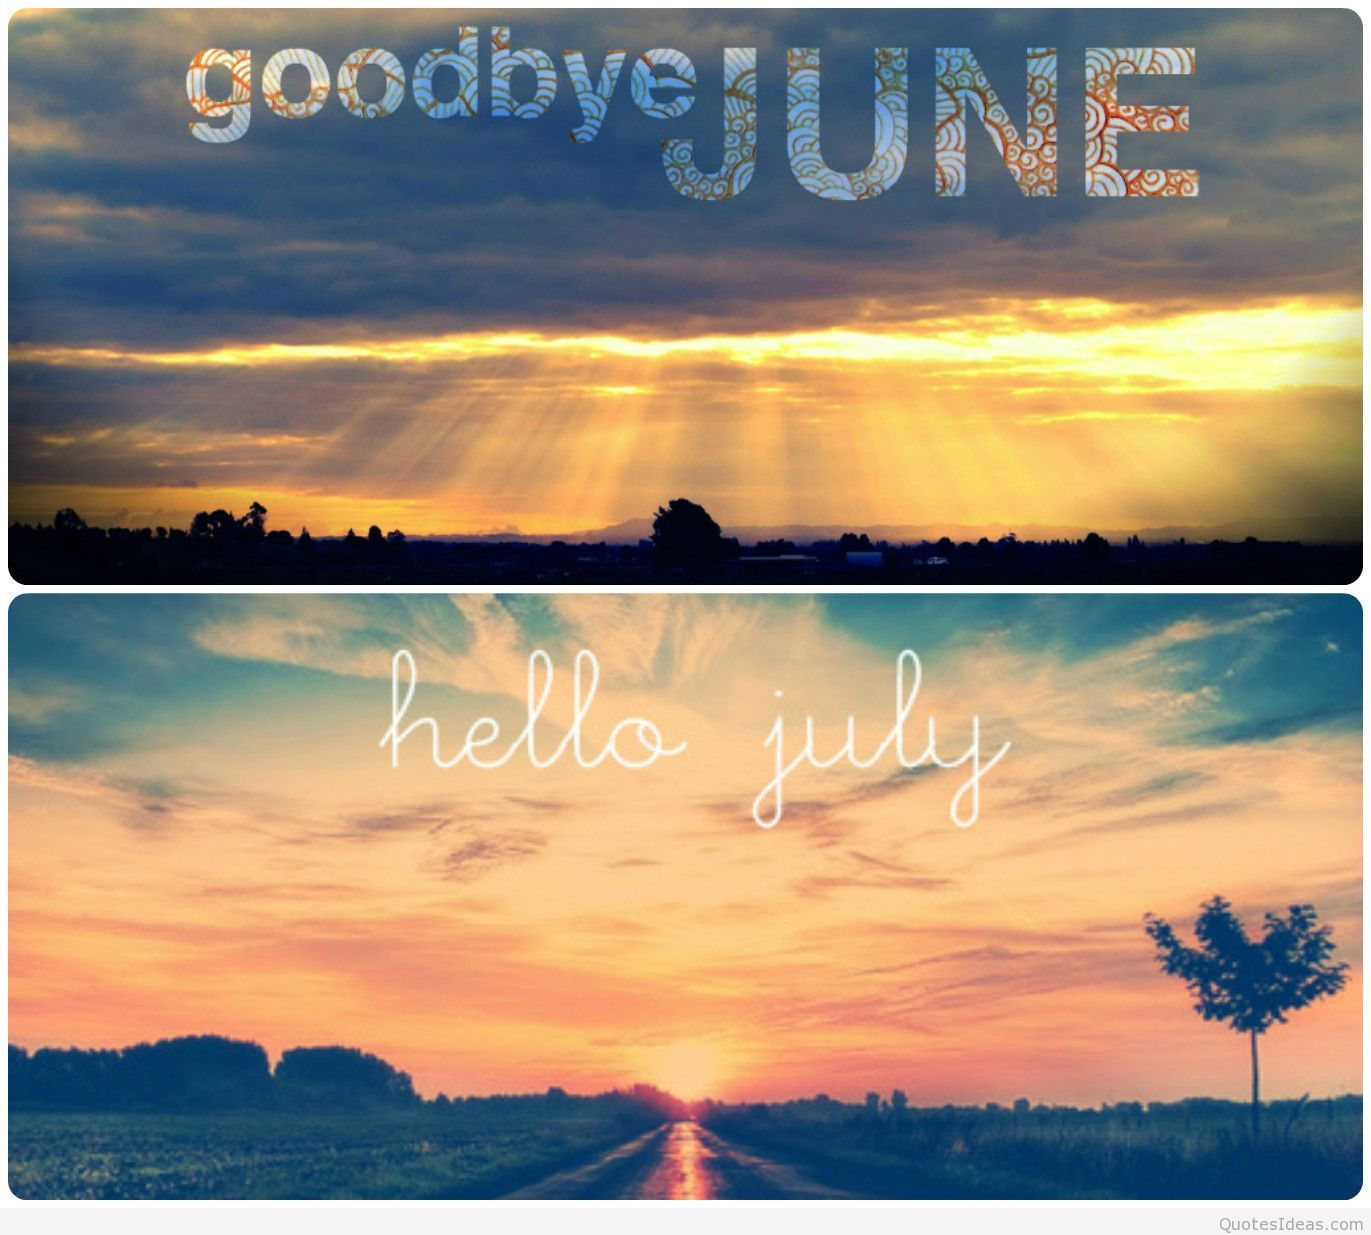 Hello wednesday pictures photos and images for facebook tumblr - Goodbye June Hello July Image